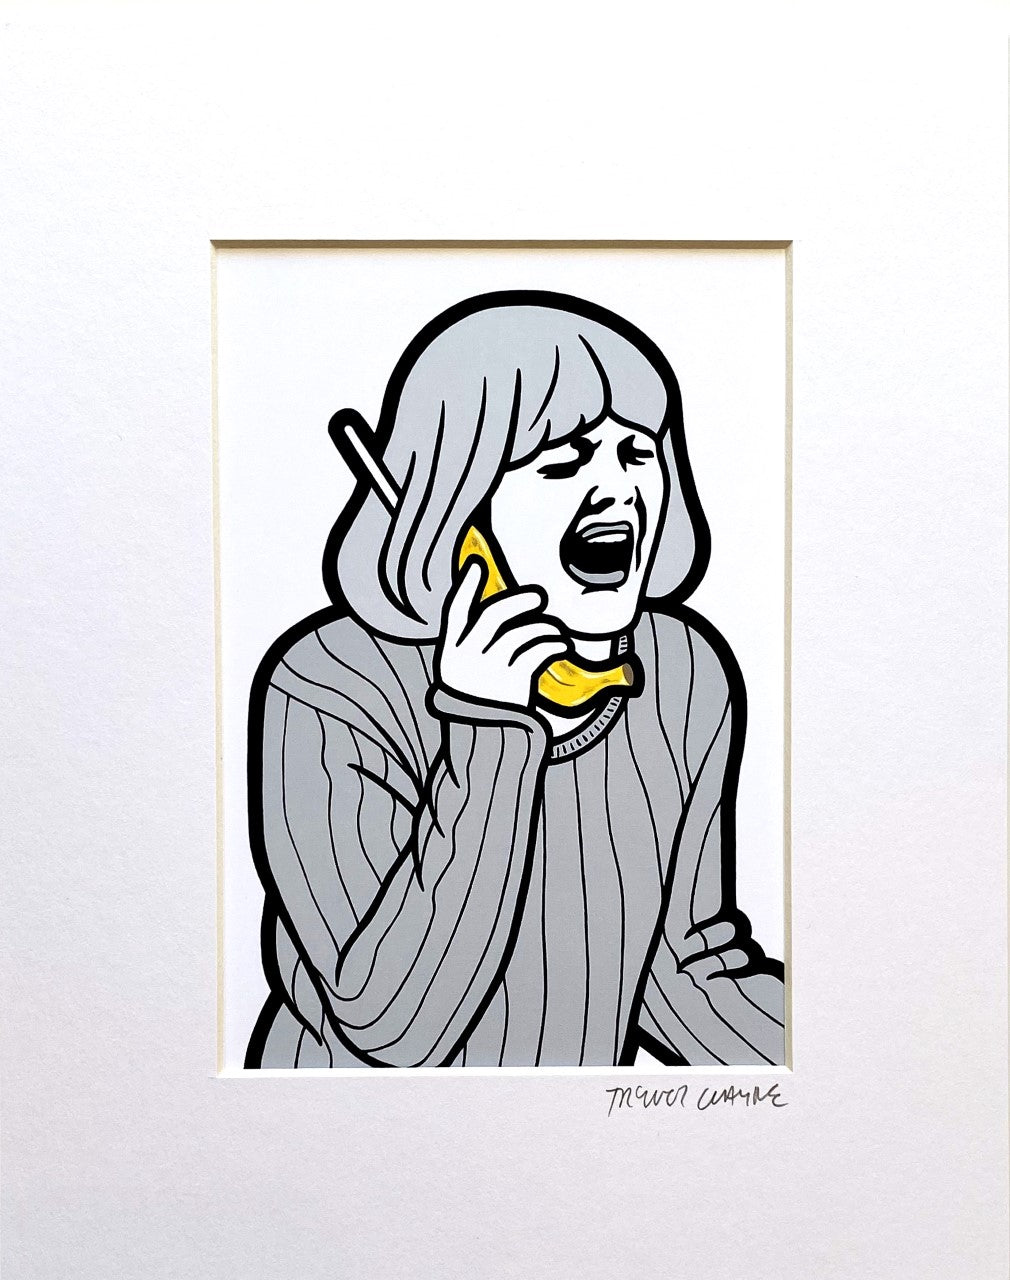 Trevor Wayne Horror Banana Series Scream Print